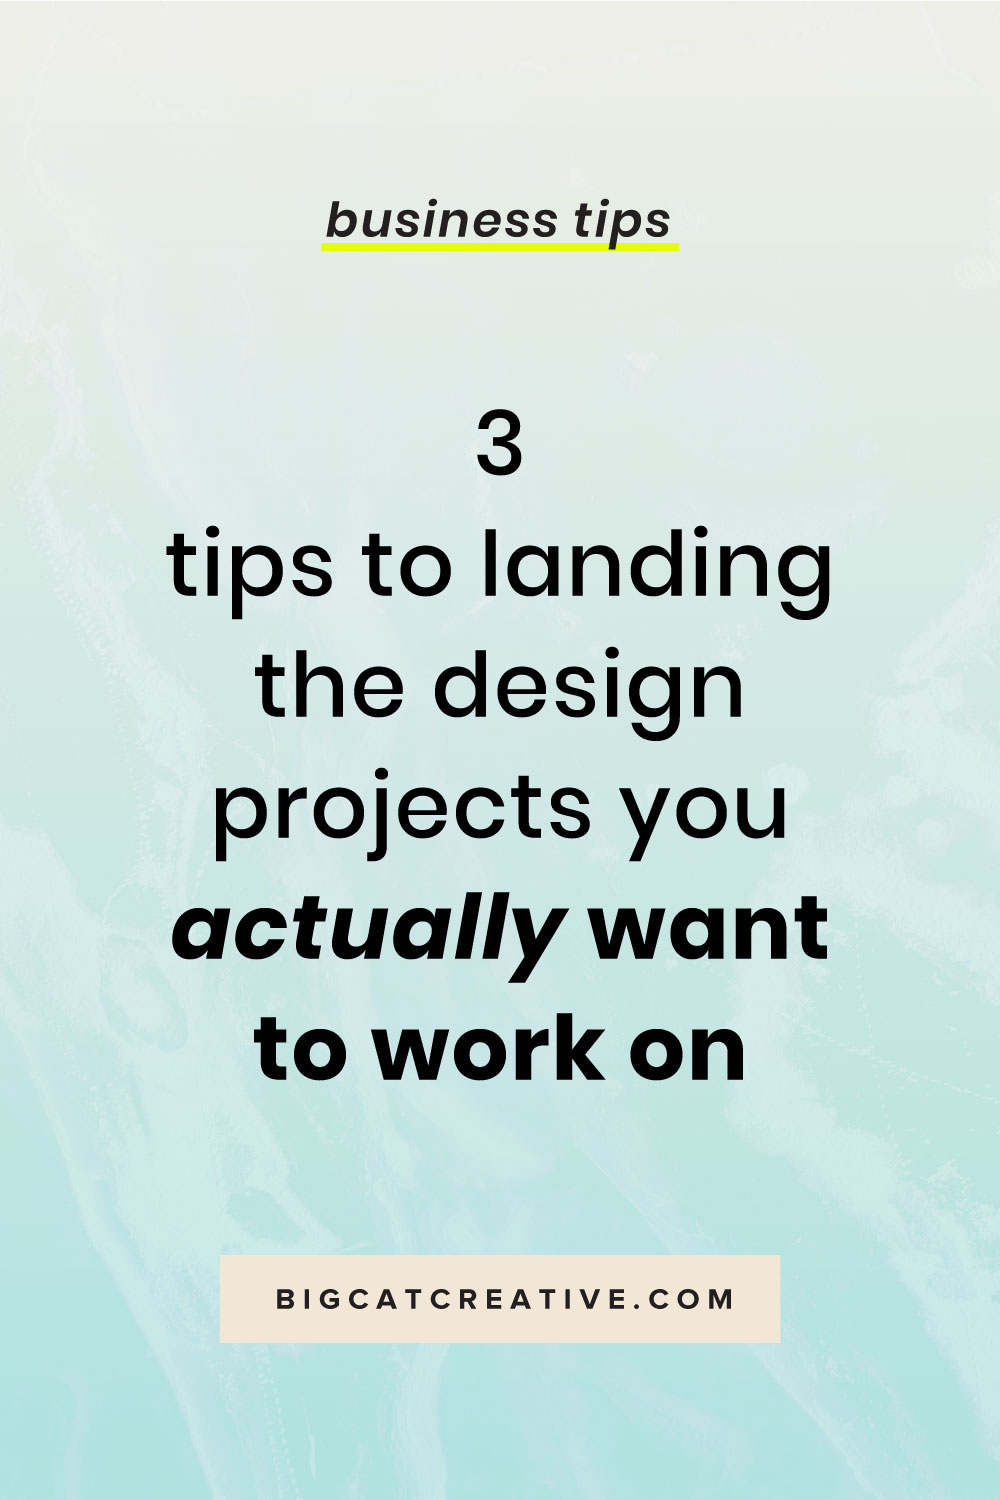 Running your own online design business can be tricky. Use these 3 tips so you can start landing the design projects that you actually enjoy | Graphic Design Business Tips by Big Cat Creative | Design, Designer, Freelancer, Graphic Design, Design Business, Online Design Business, Getting Design Clients, Design Tips